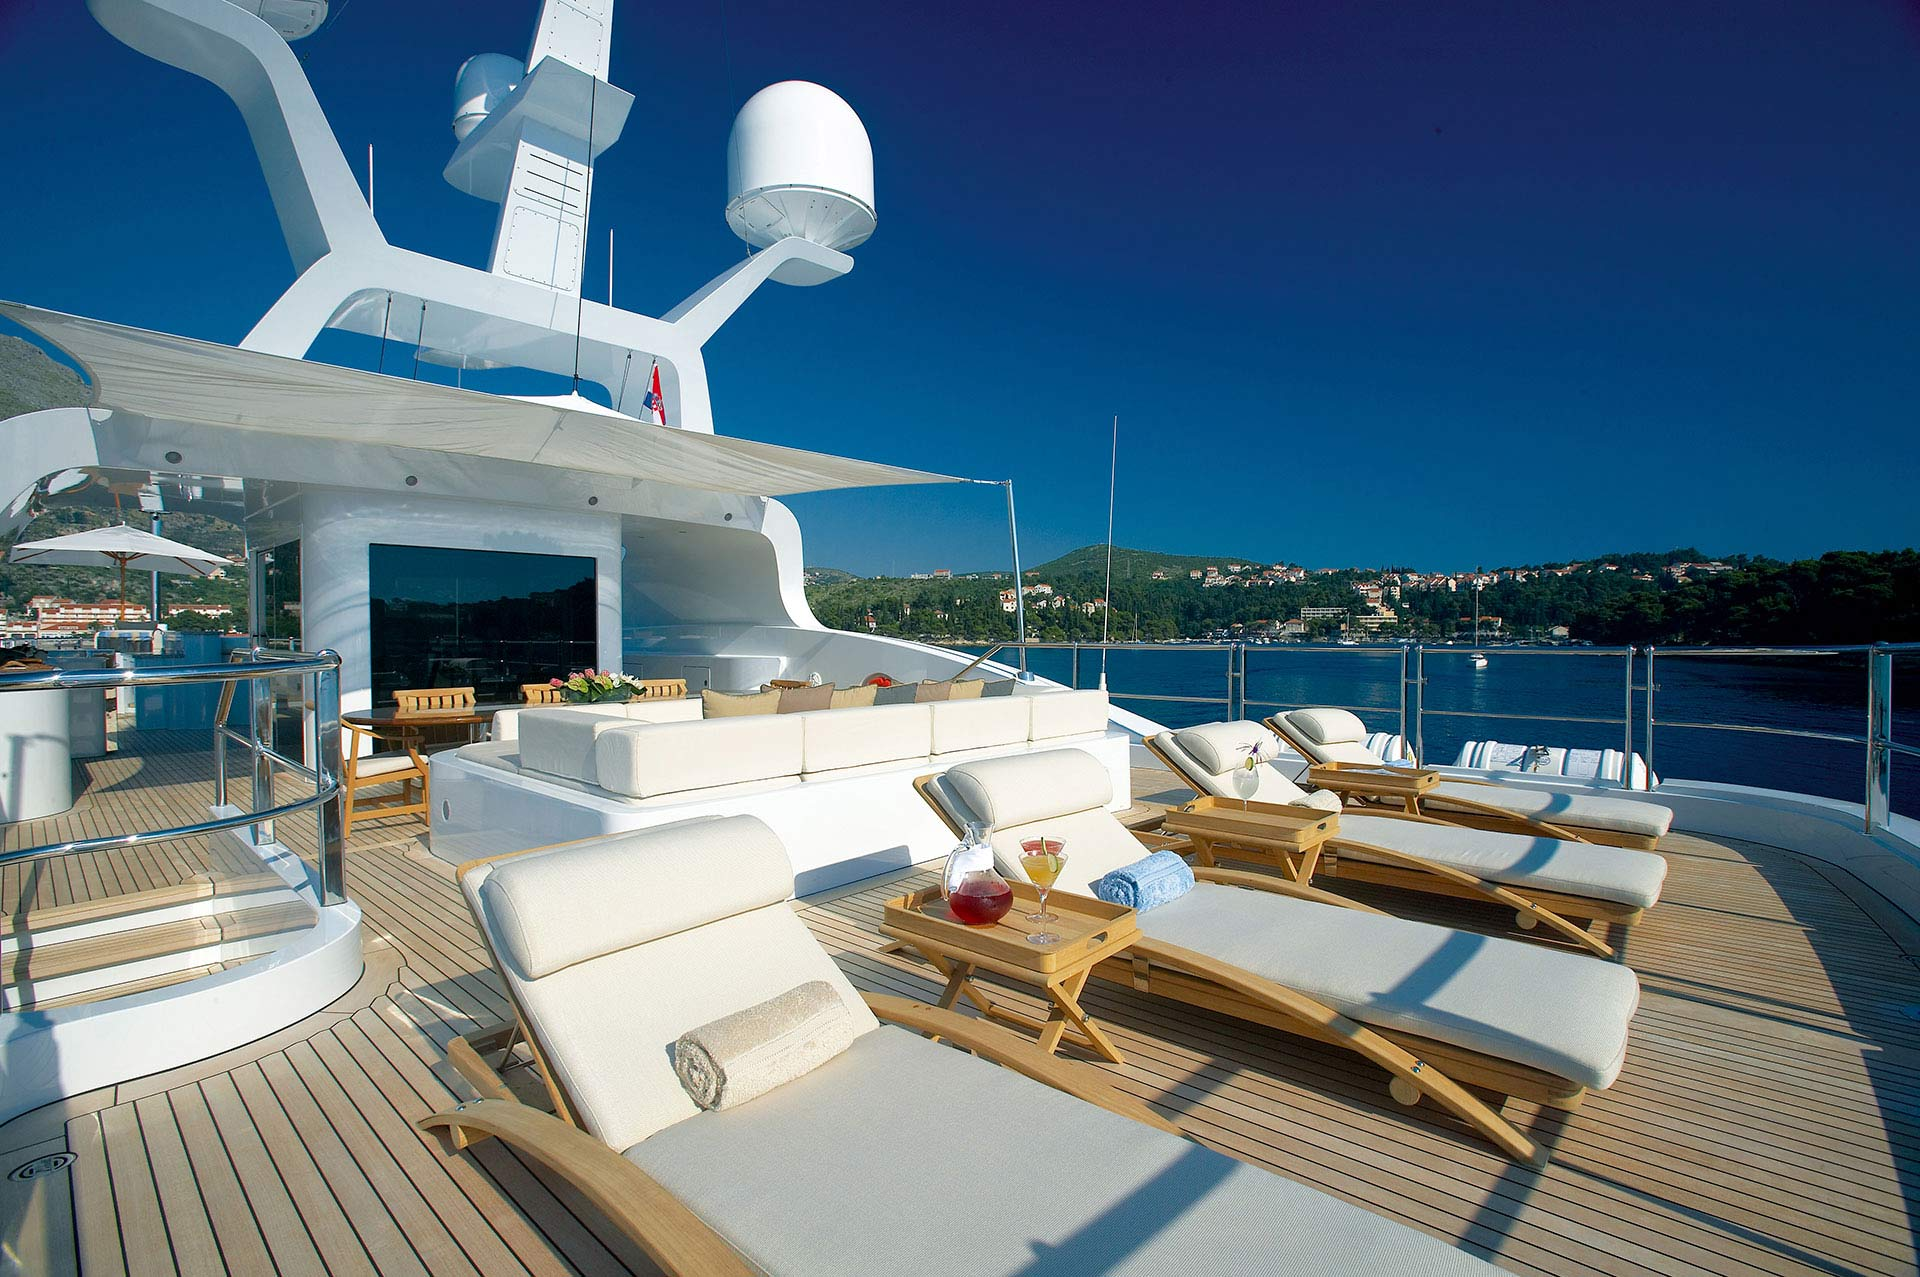 Andreas-L-Motor-Yacht-for-charter-gallery-14.jpg